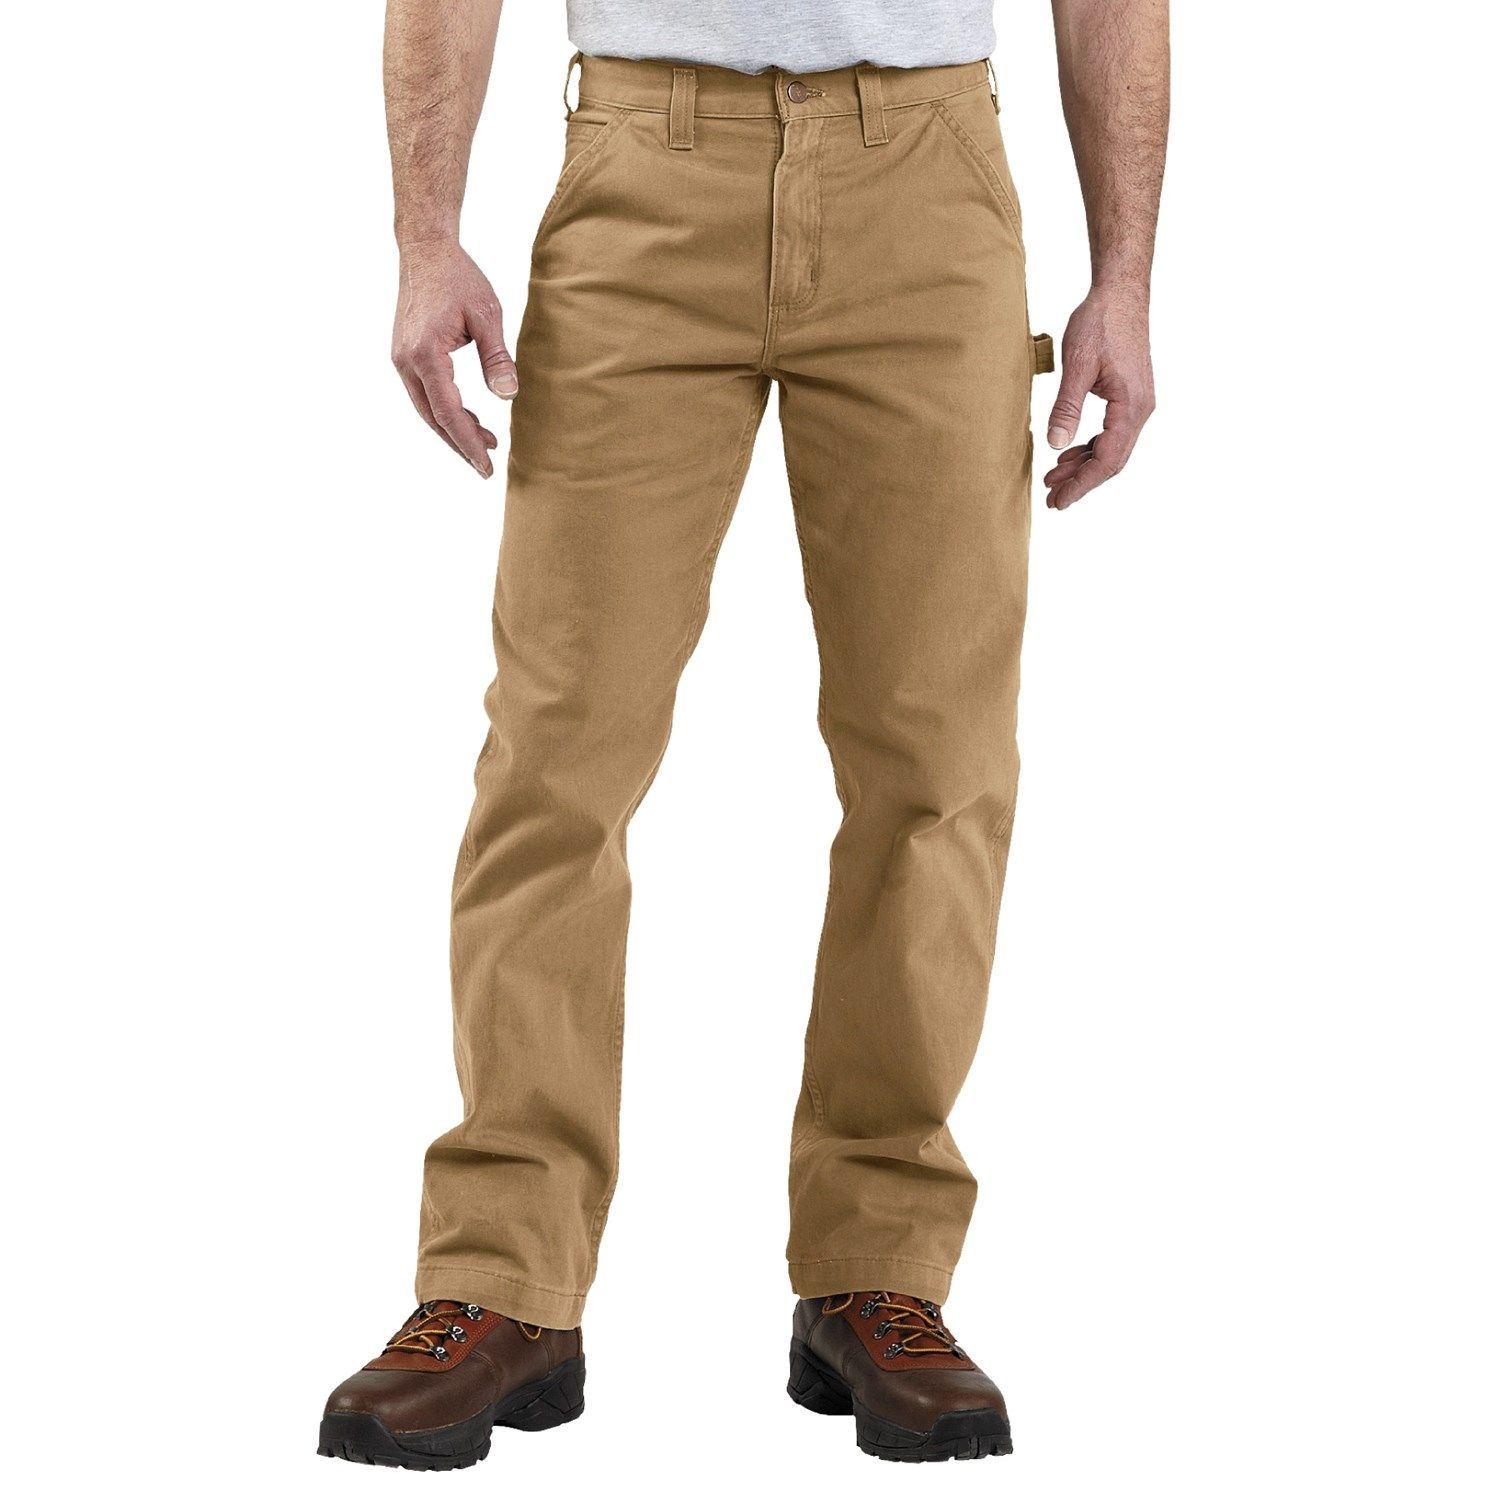 Brown Khaki Pants Men - Pant Row